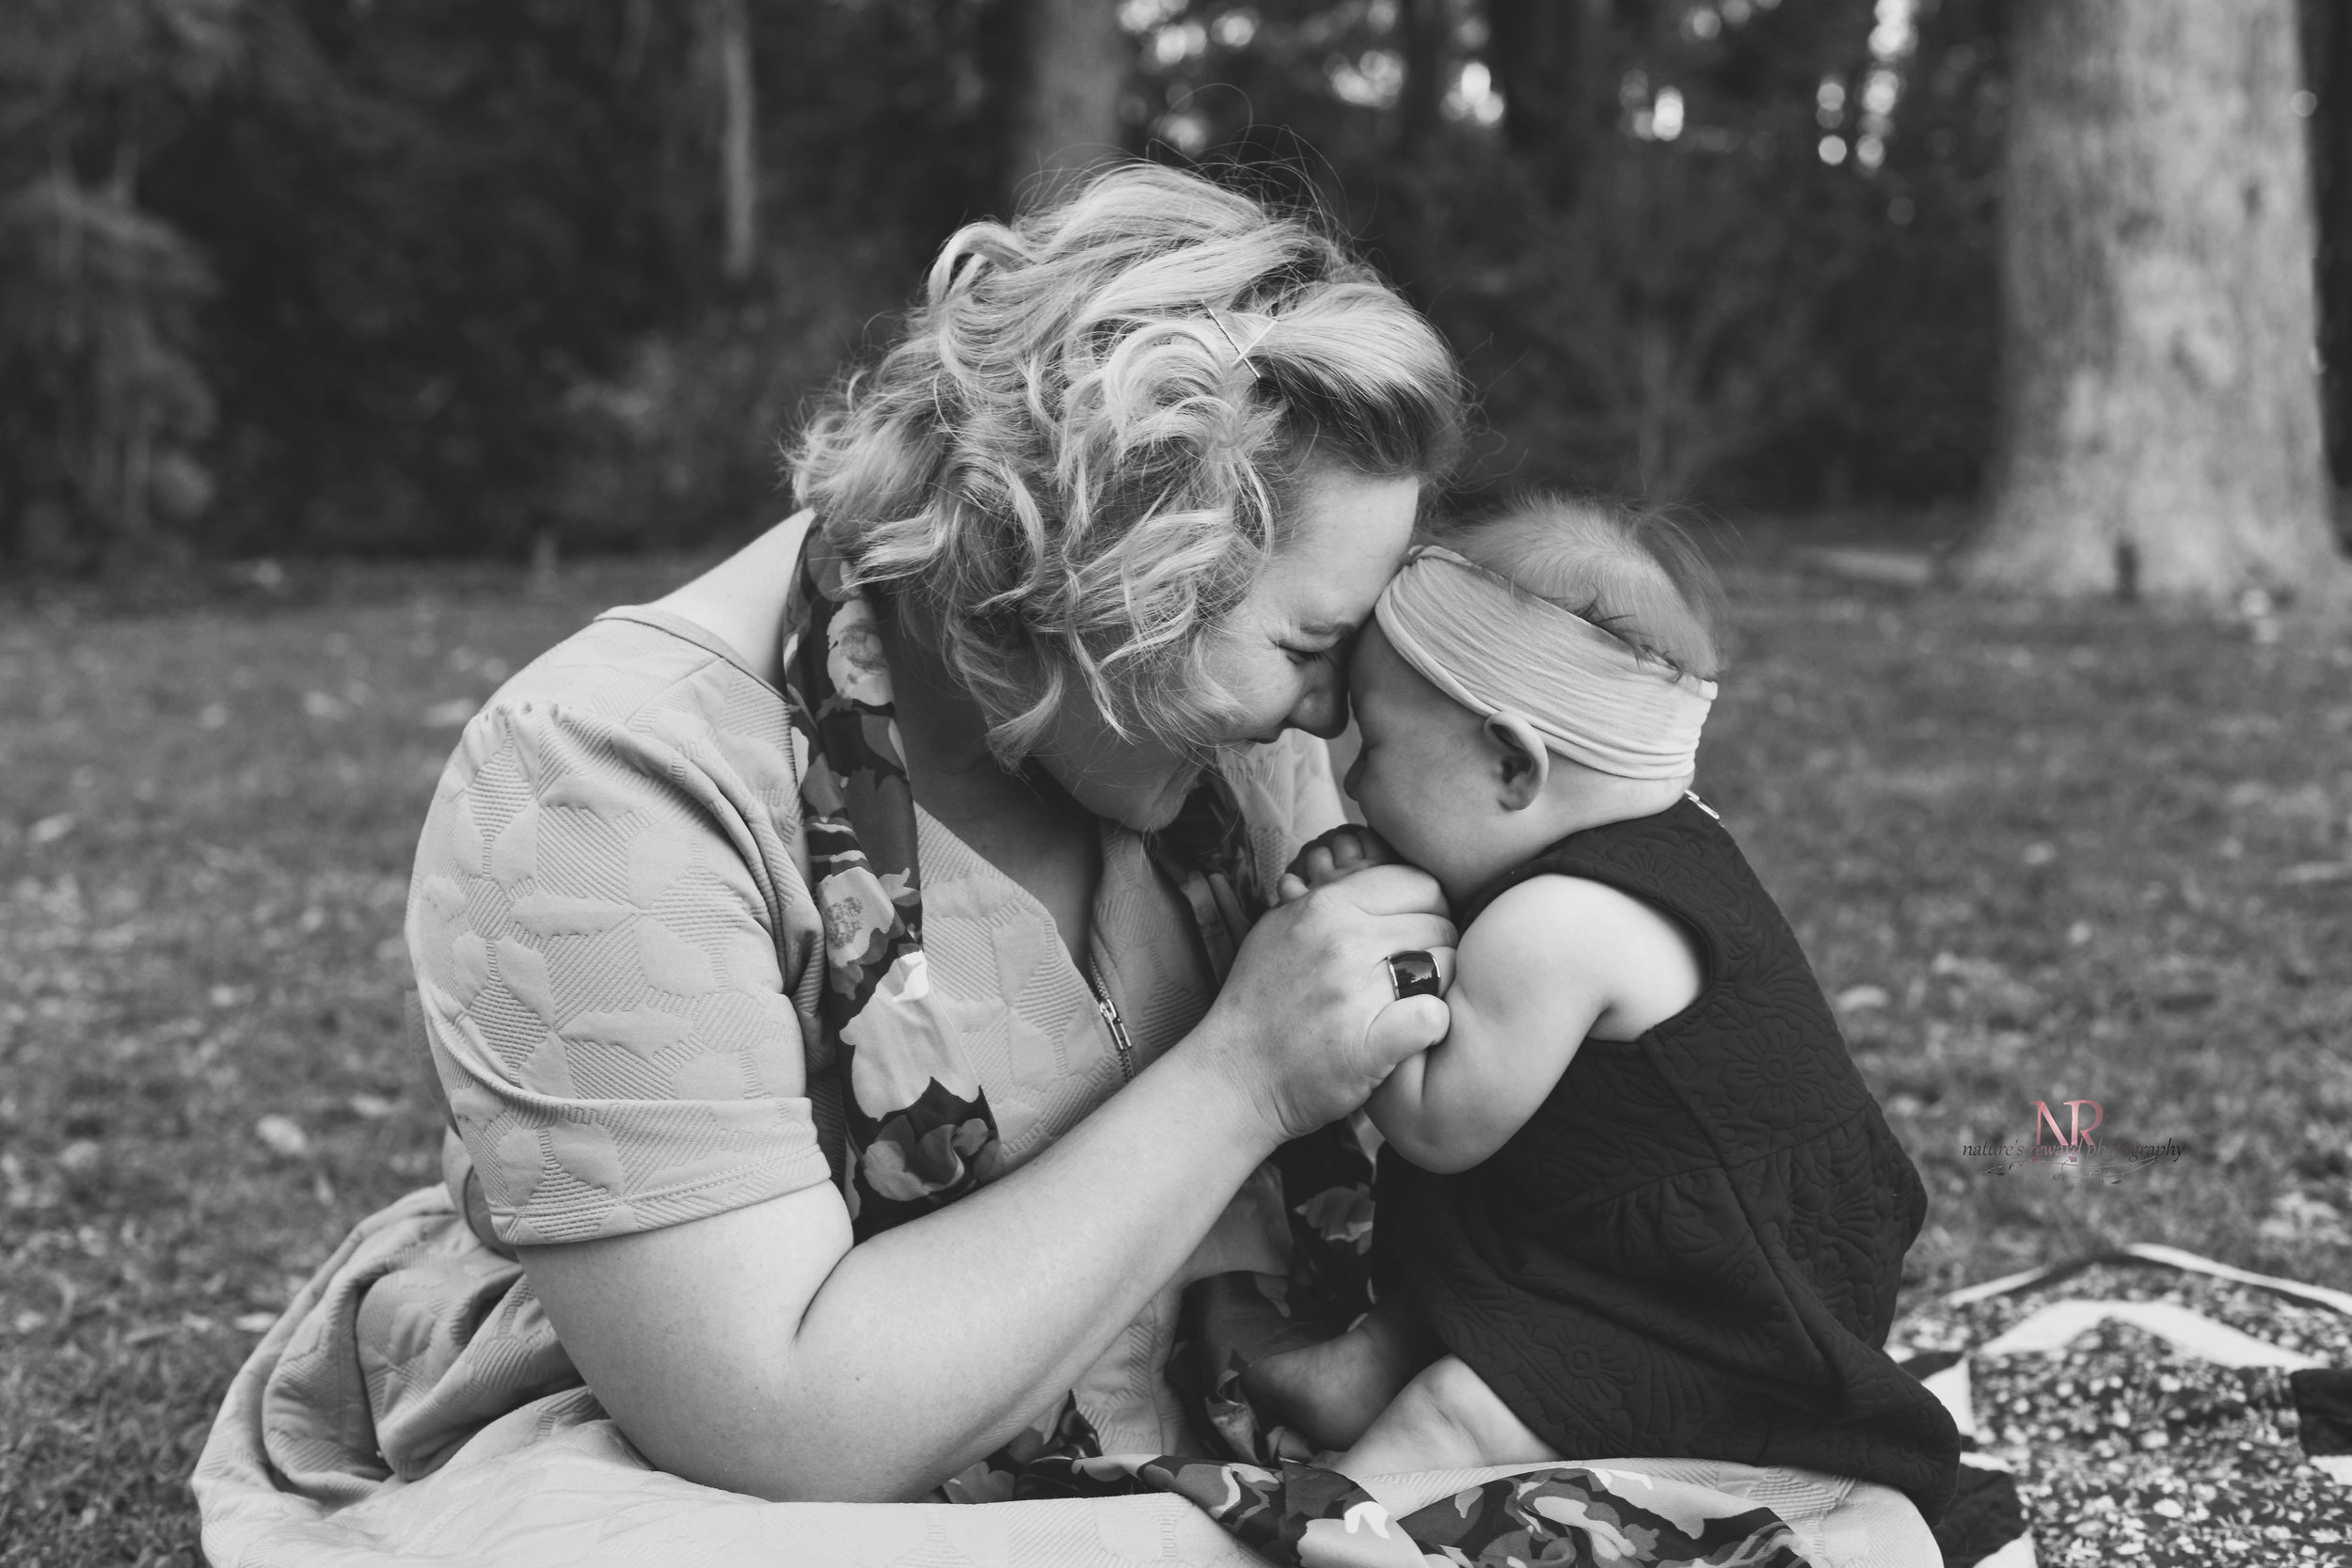 A per fect Moment. What I would give to have this captured of me with my babe. This is one lucky momma. She looks so lovely and so very happy.